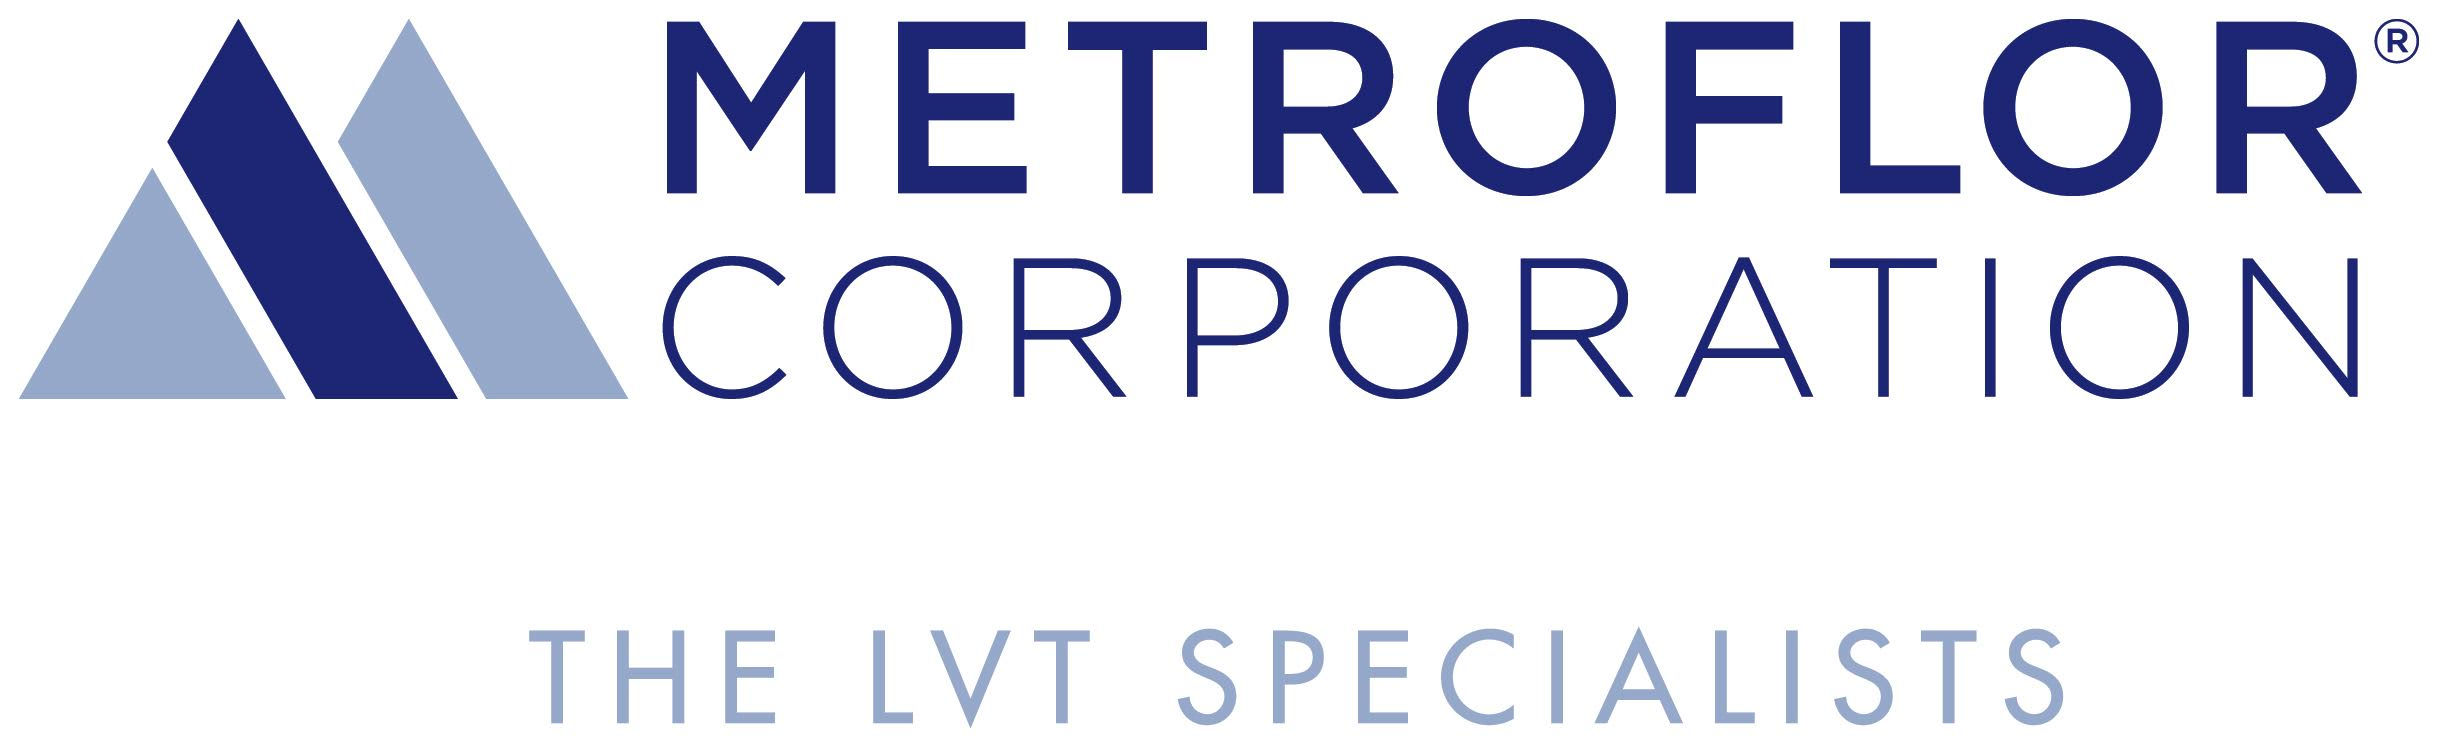 Metroflor Corporation logo